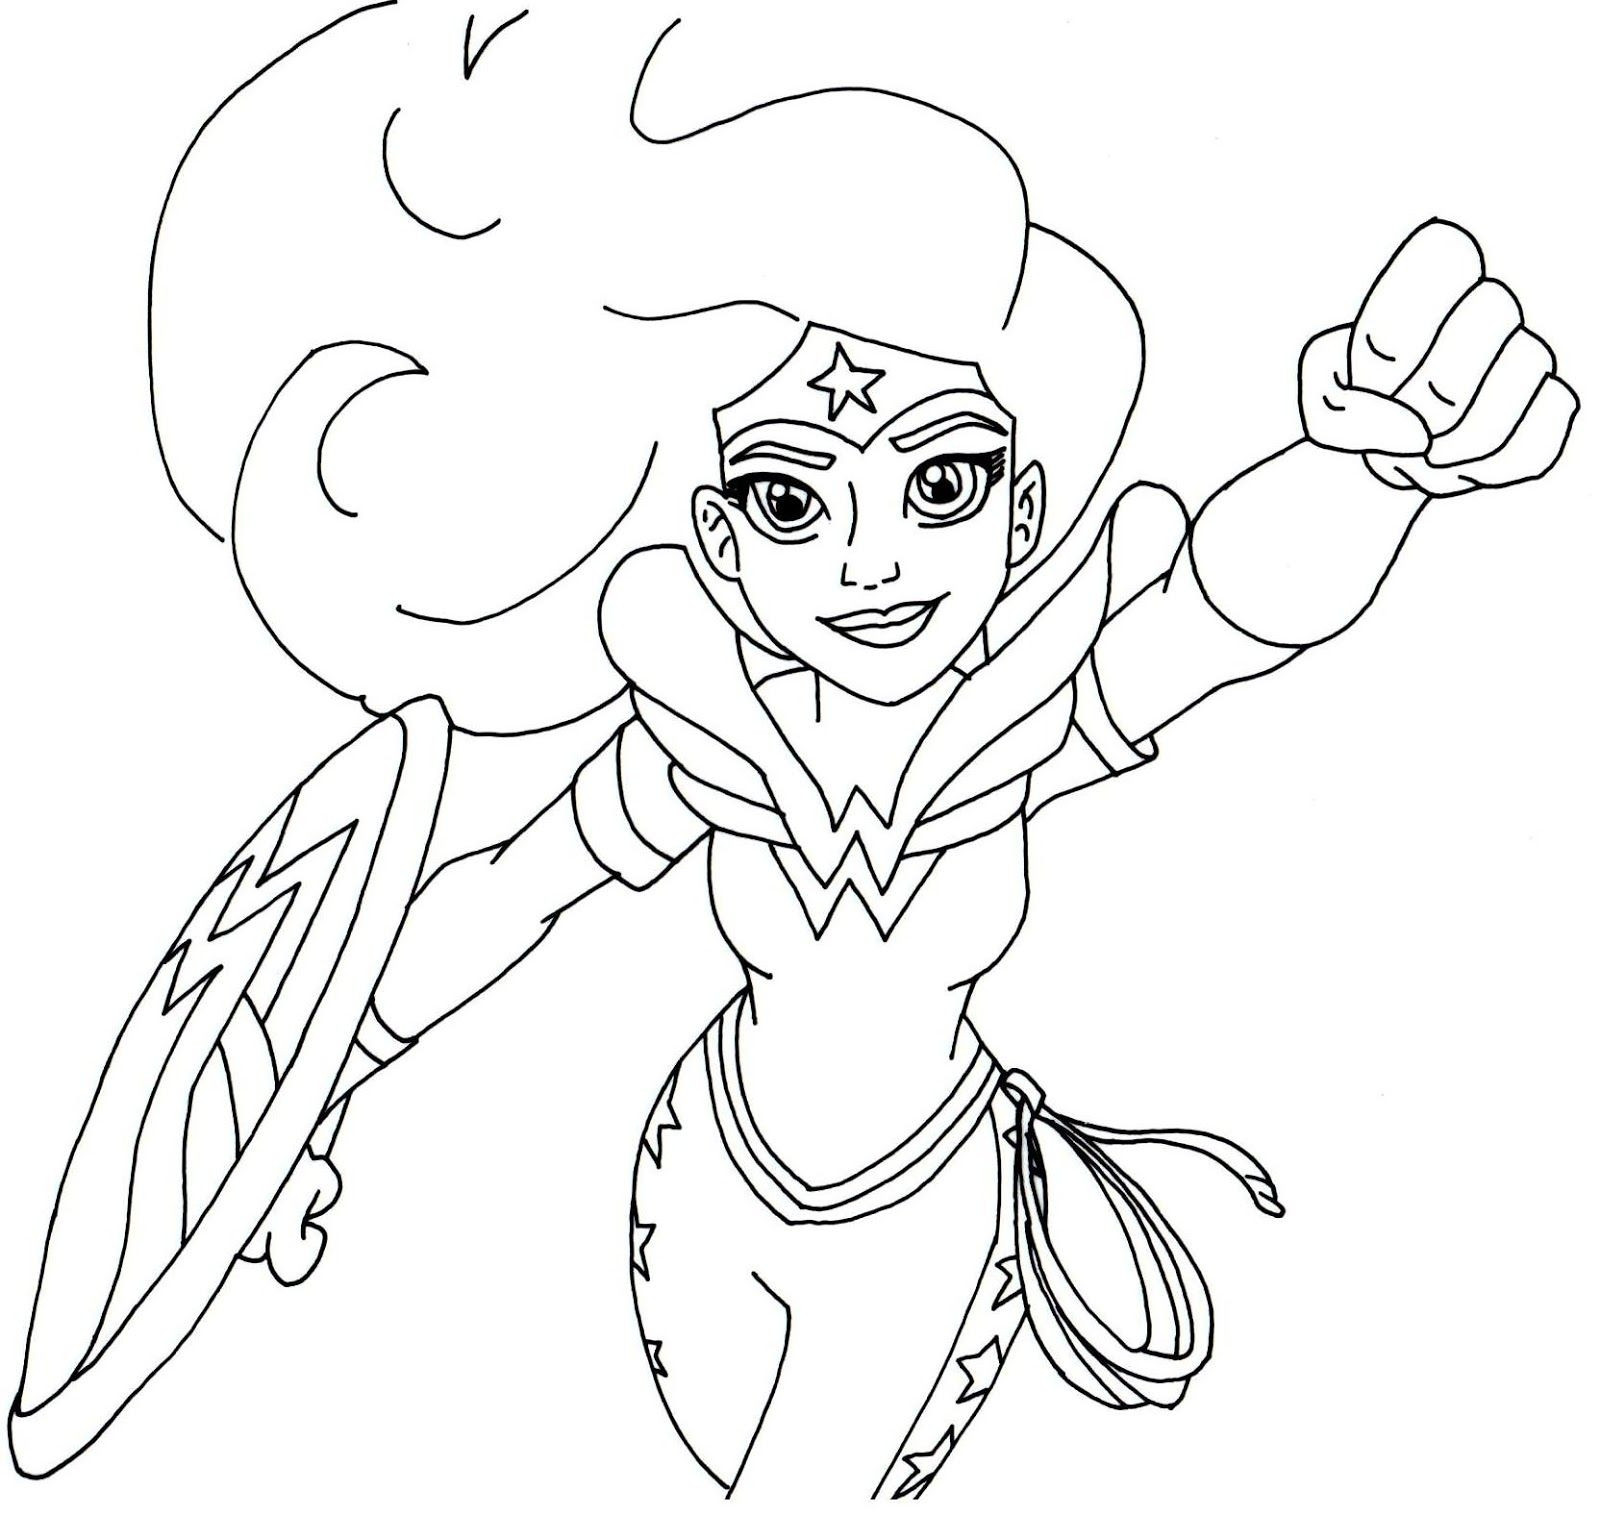 Best ideas about Superhero Free Coloring Pages . Save or Pin Superhero Coloring Pages Collection Free Coloring Books Now.